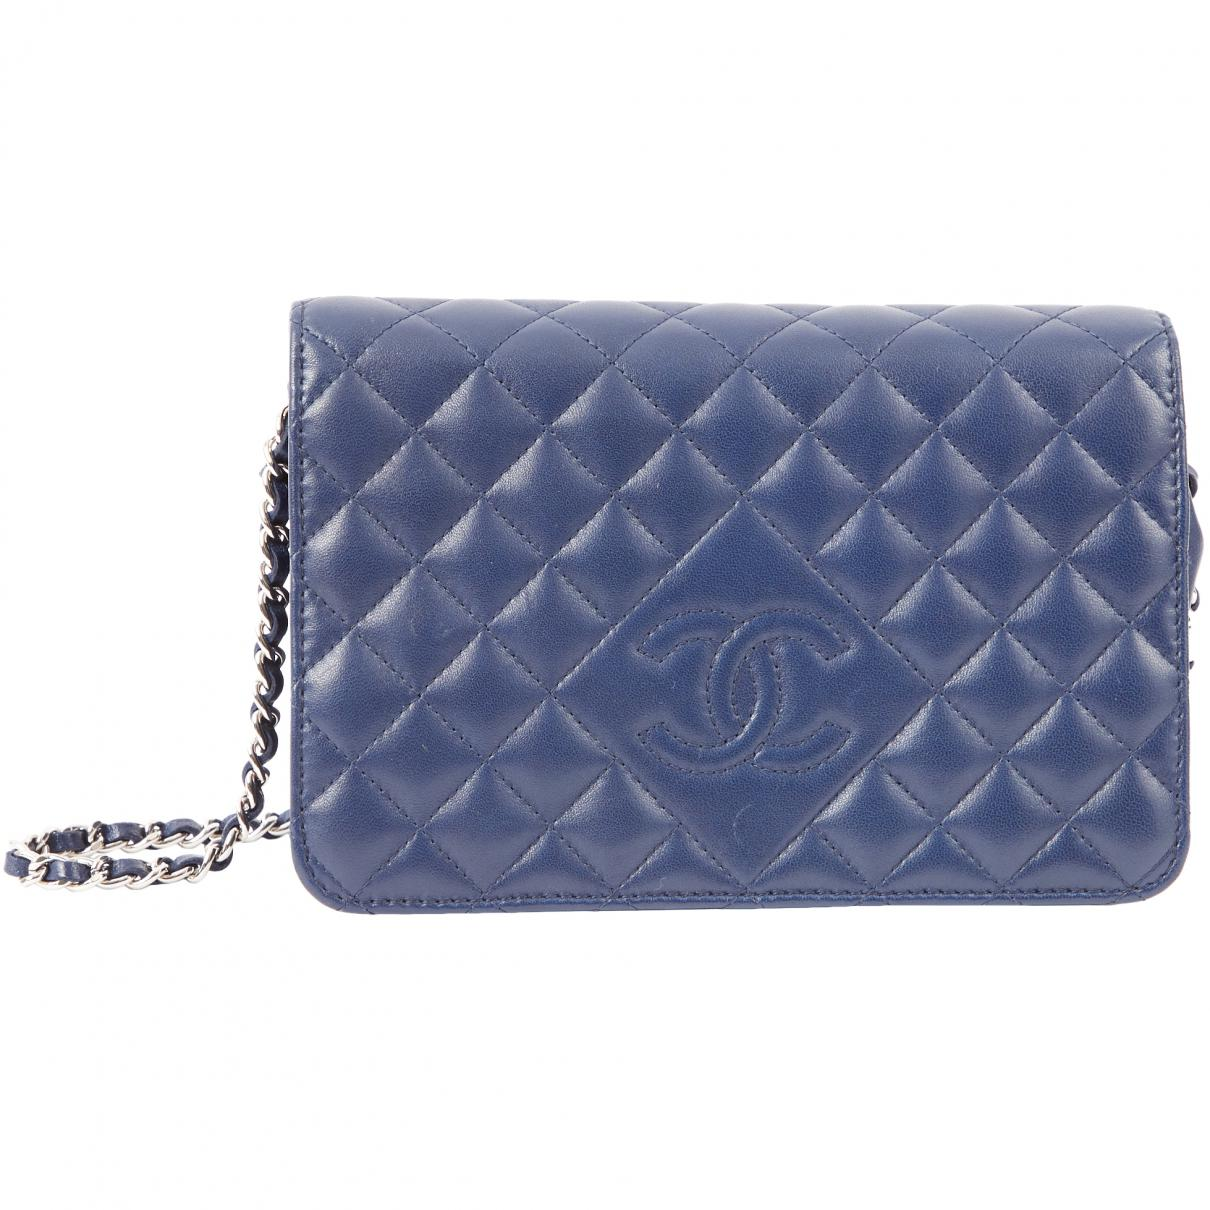 Issey Miyake Pre-owned - Clutch bag